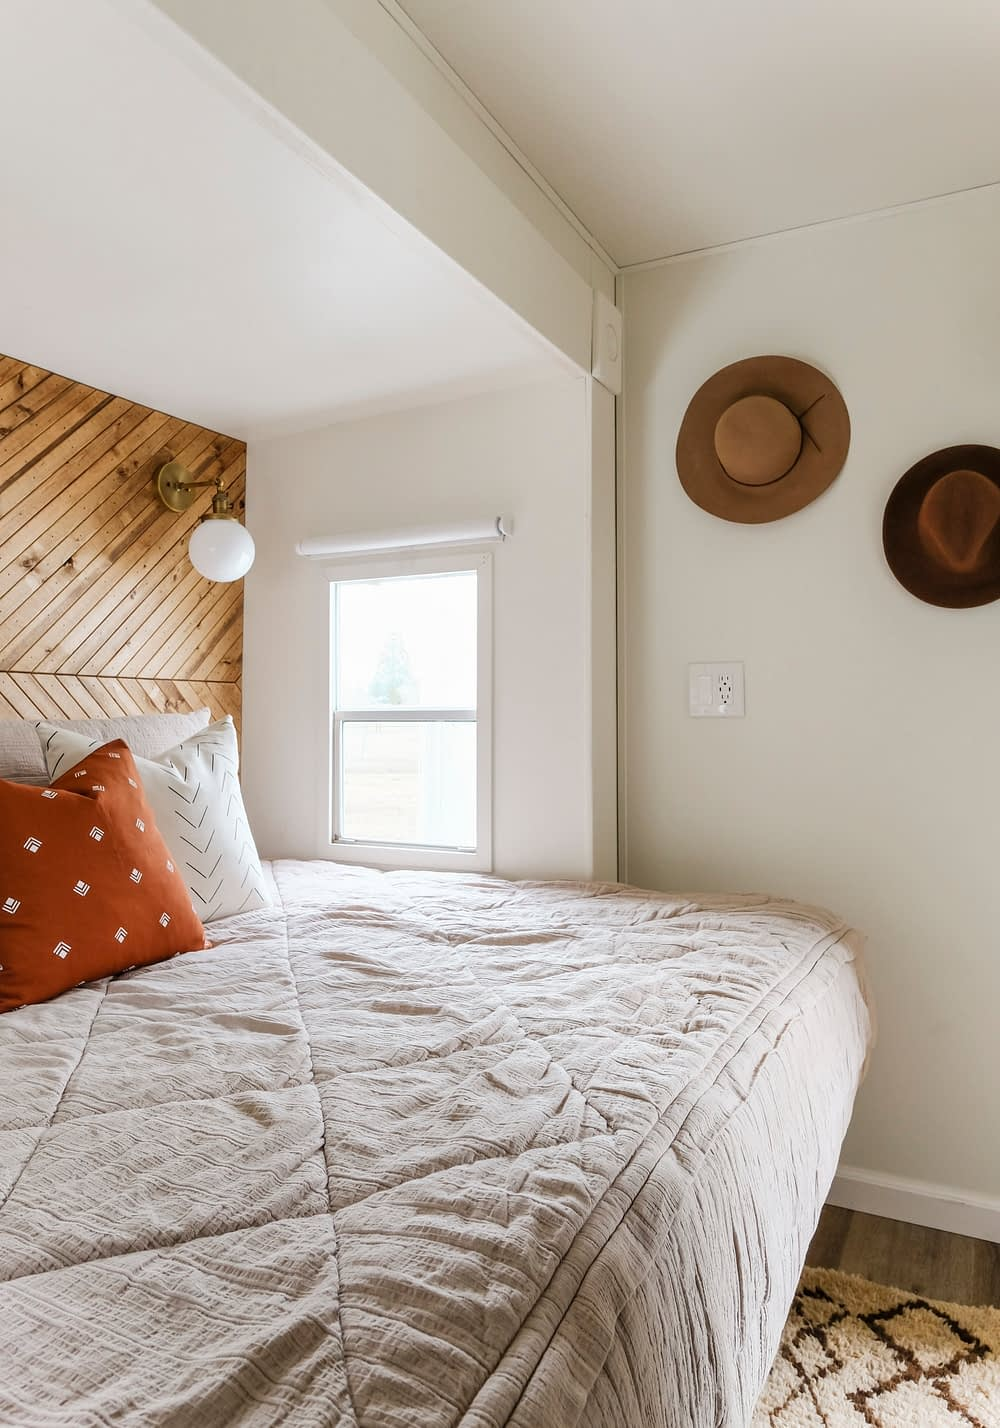 RV bed with zippered bedding and hats on the wall